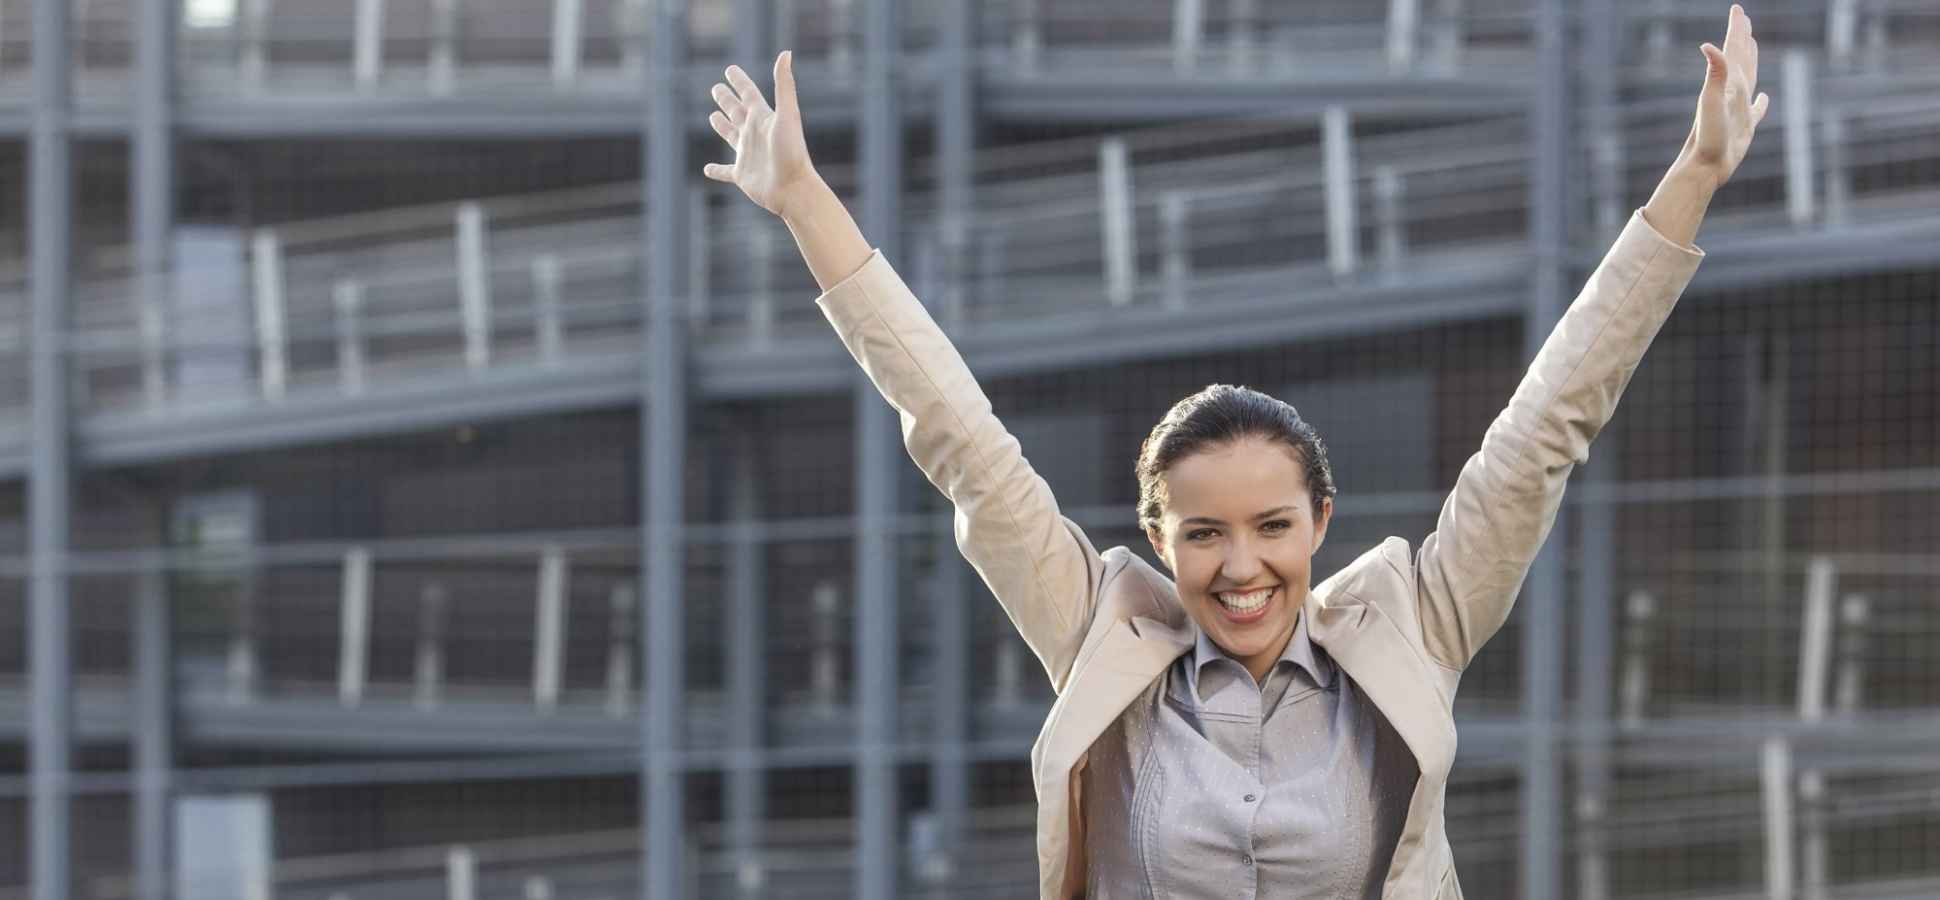 5 Things You Didn't Know Can Predict Your Career Success